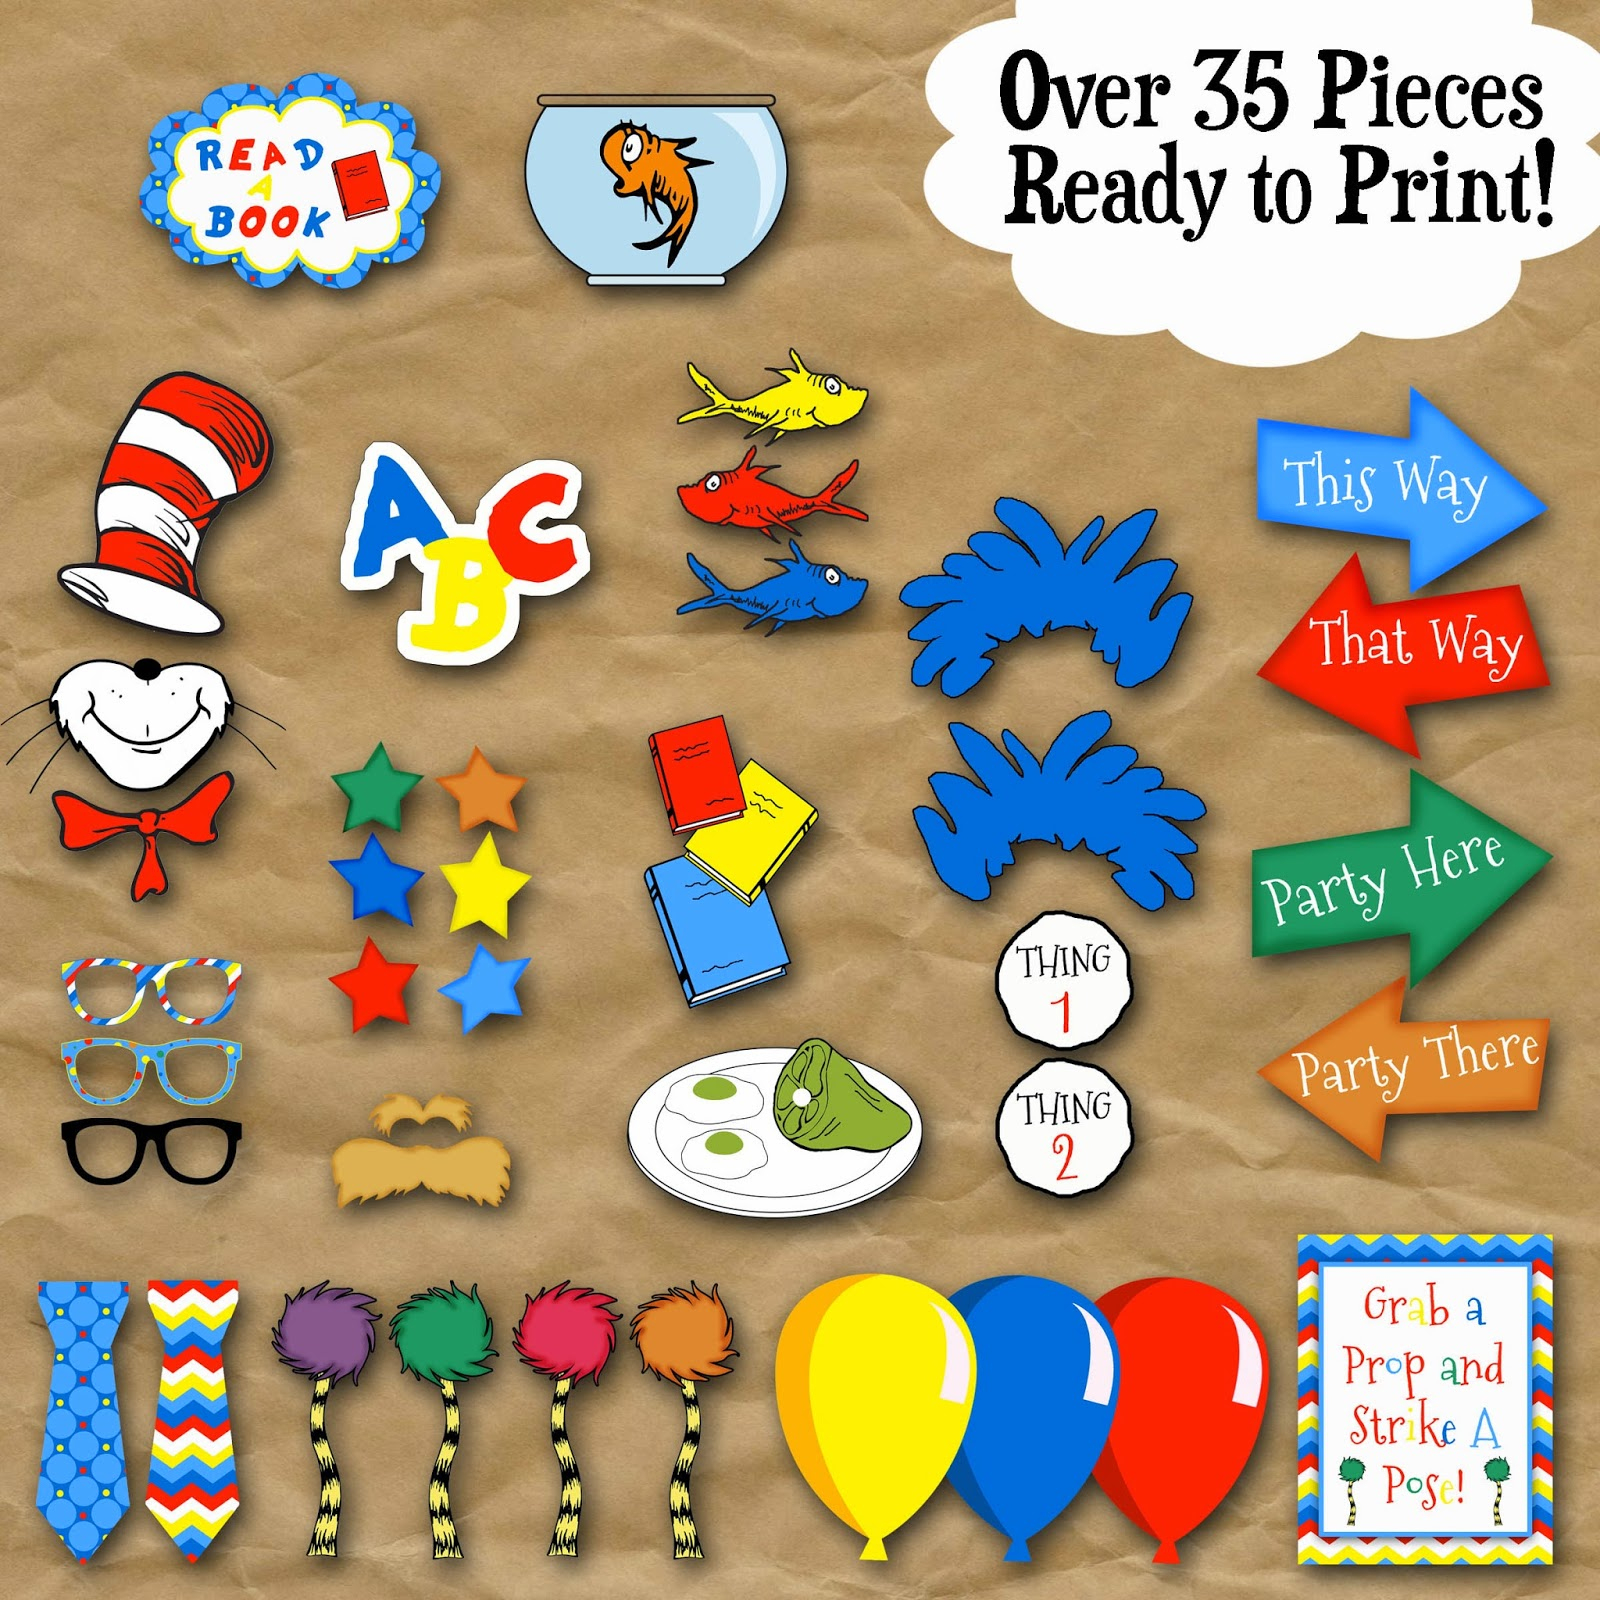 Old Market Corner: Dr. Seuss Photo Booth Printable Props - Free Printable Dr Seuss Photo Props